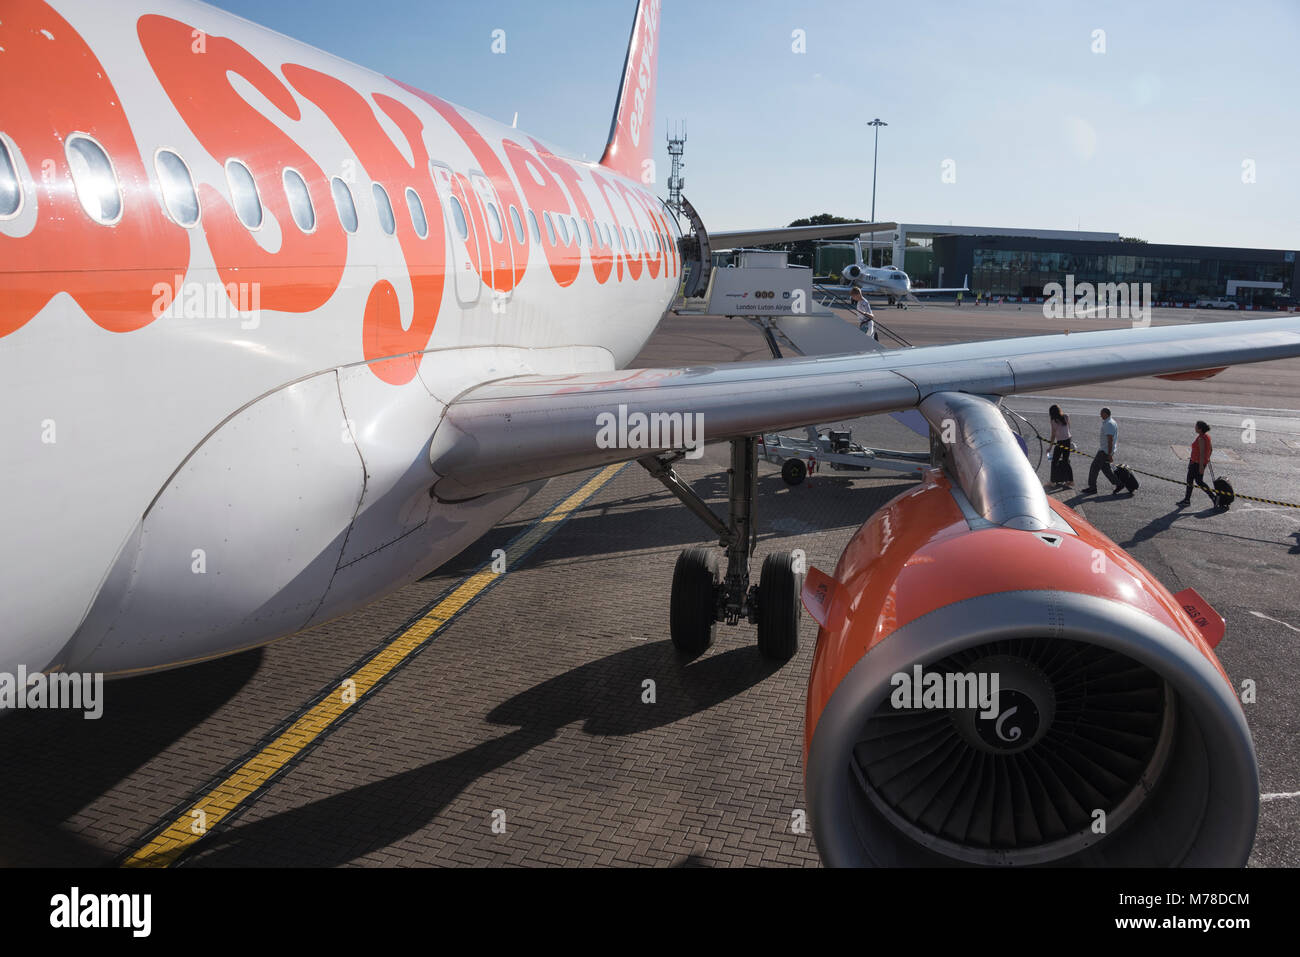 EasyJet plane waiting for passengers to board, Luton Airport, UK - Stock Image